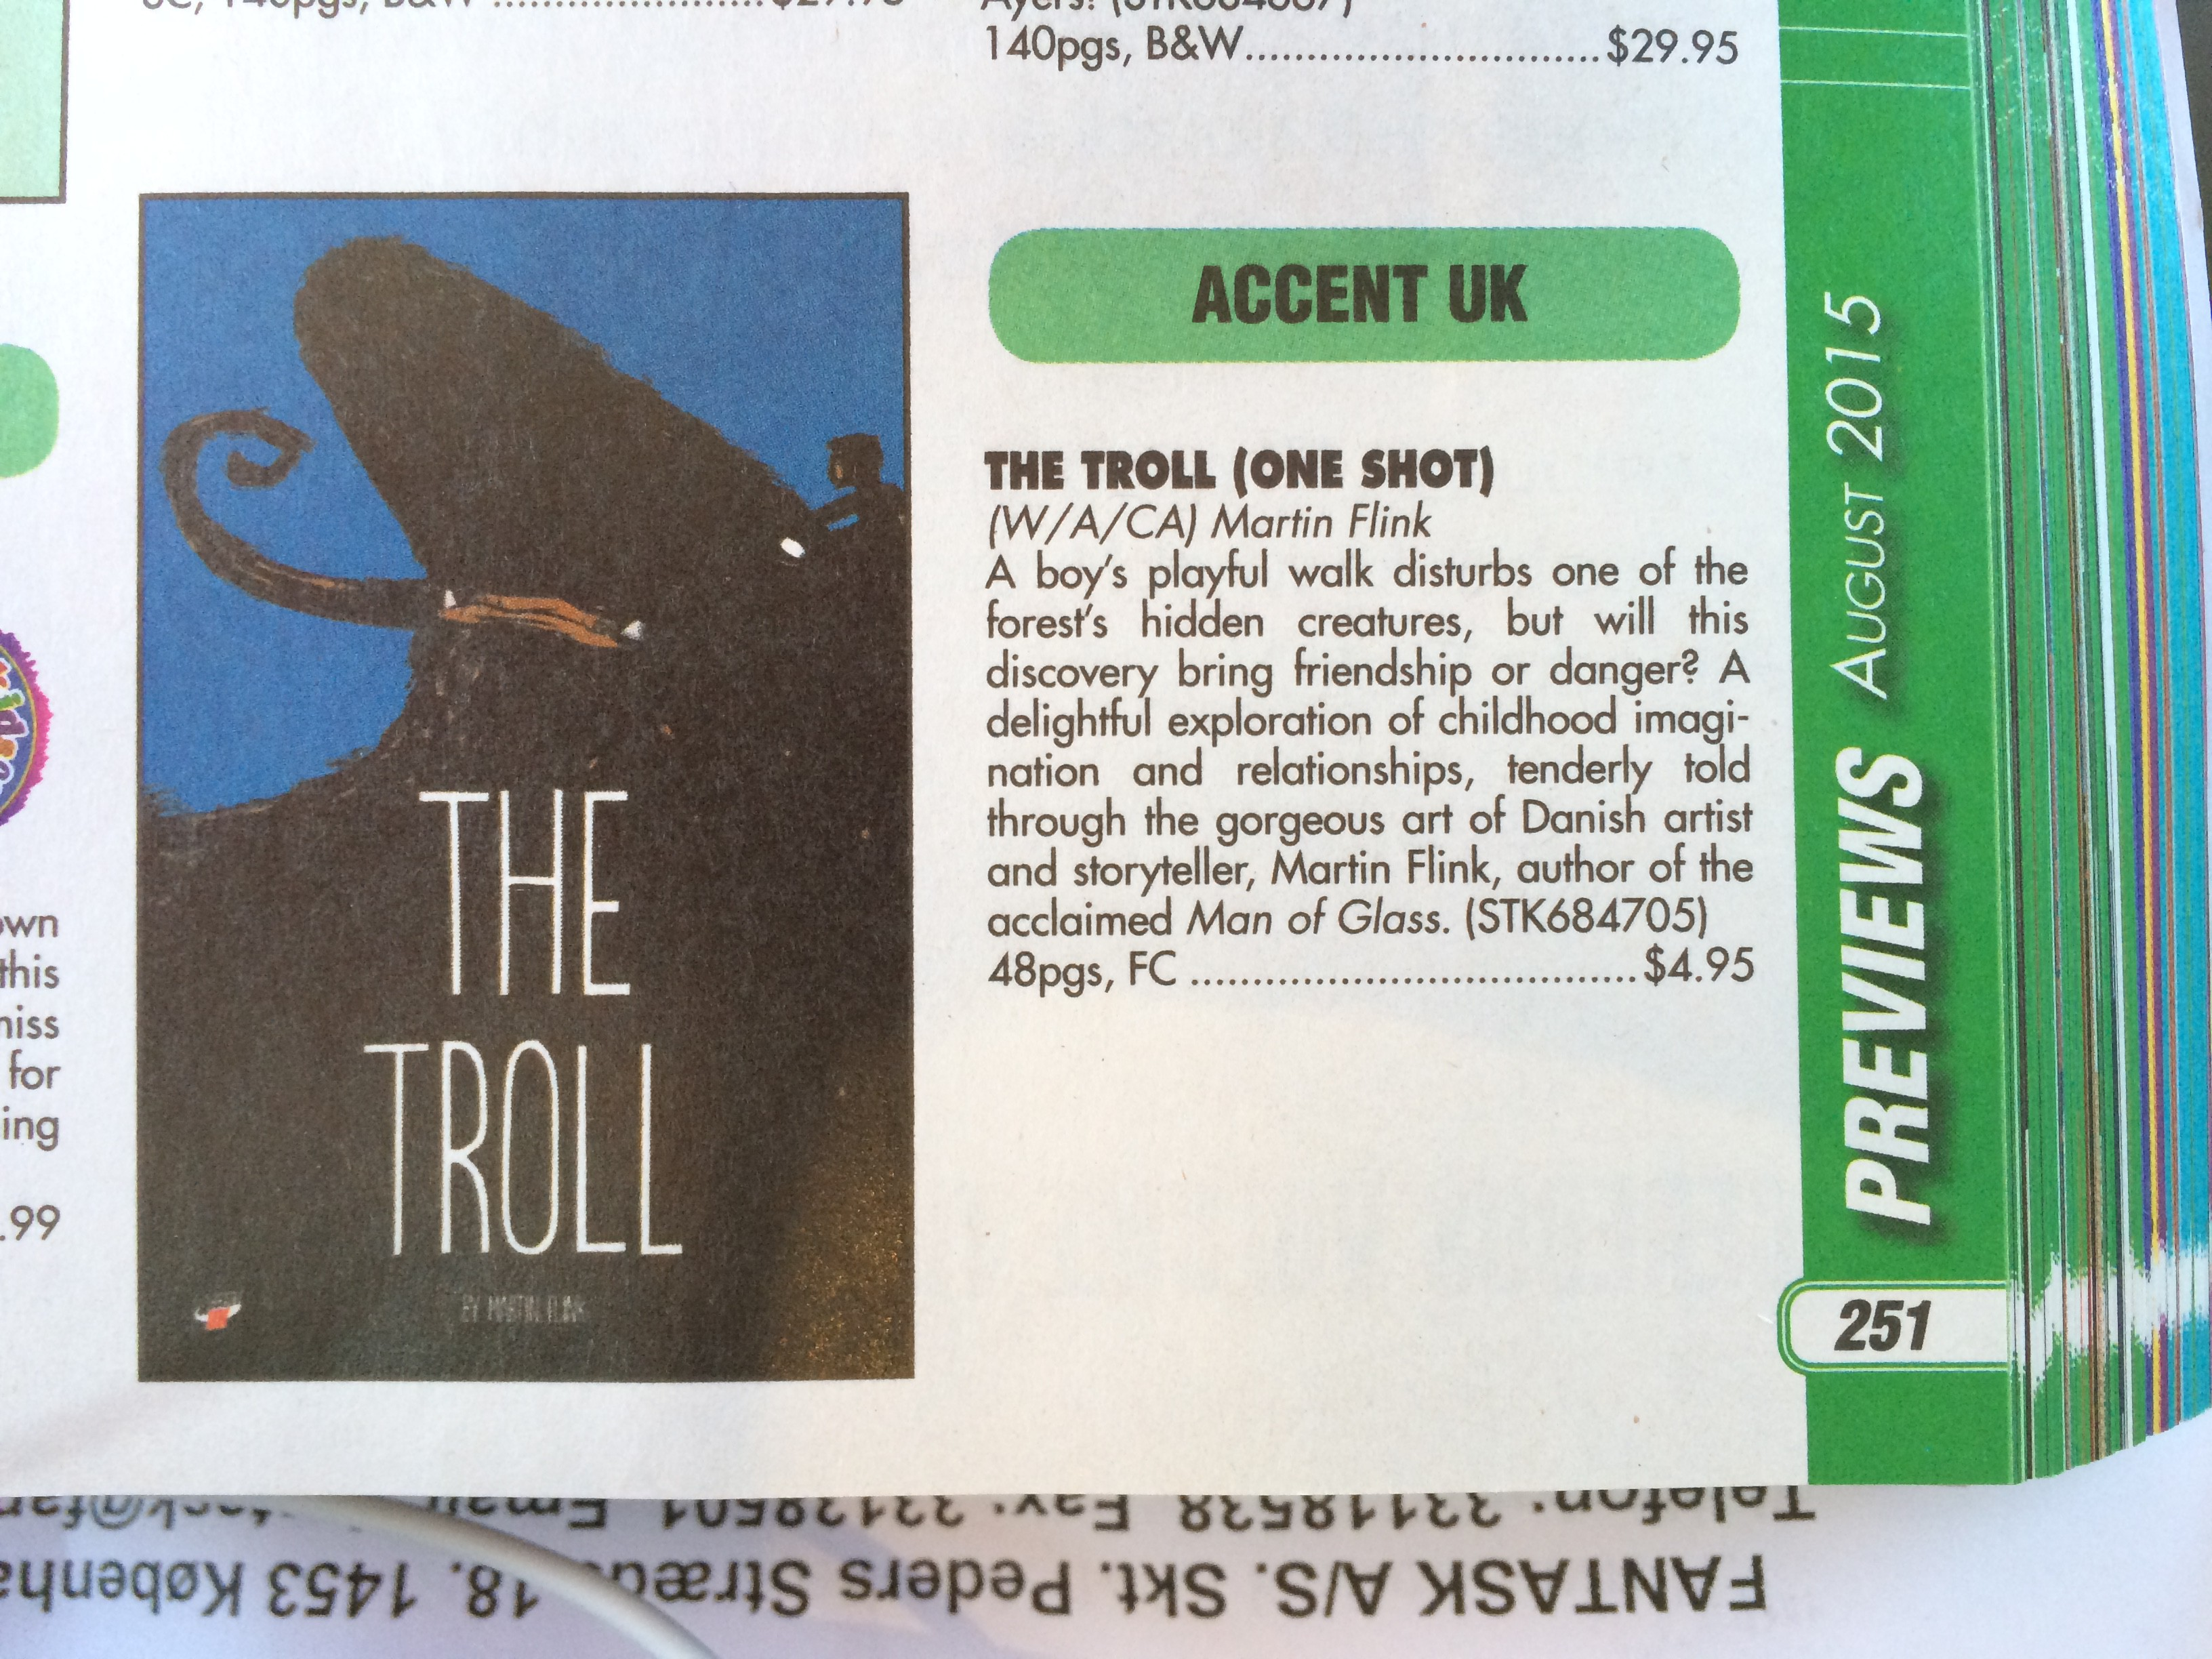 The Troll by Martin Flink on Previews August 2015